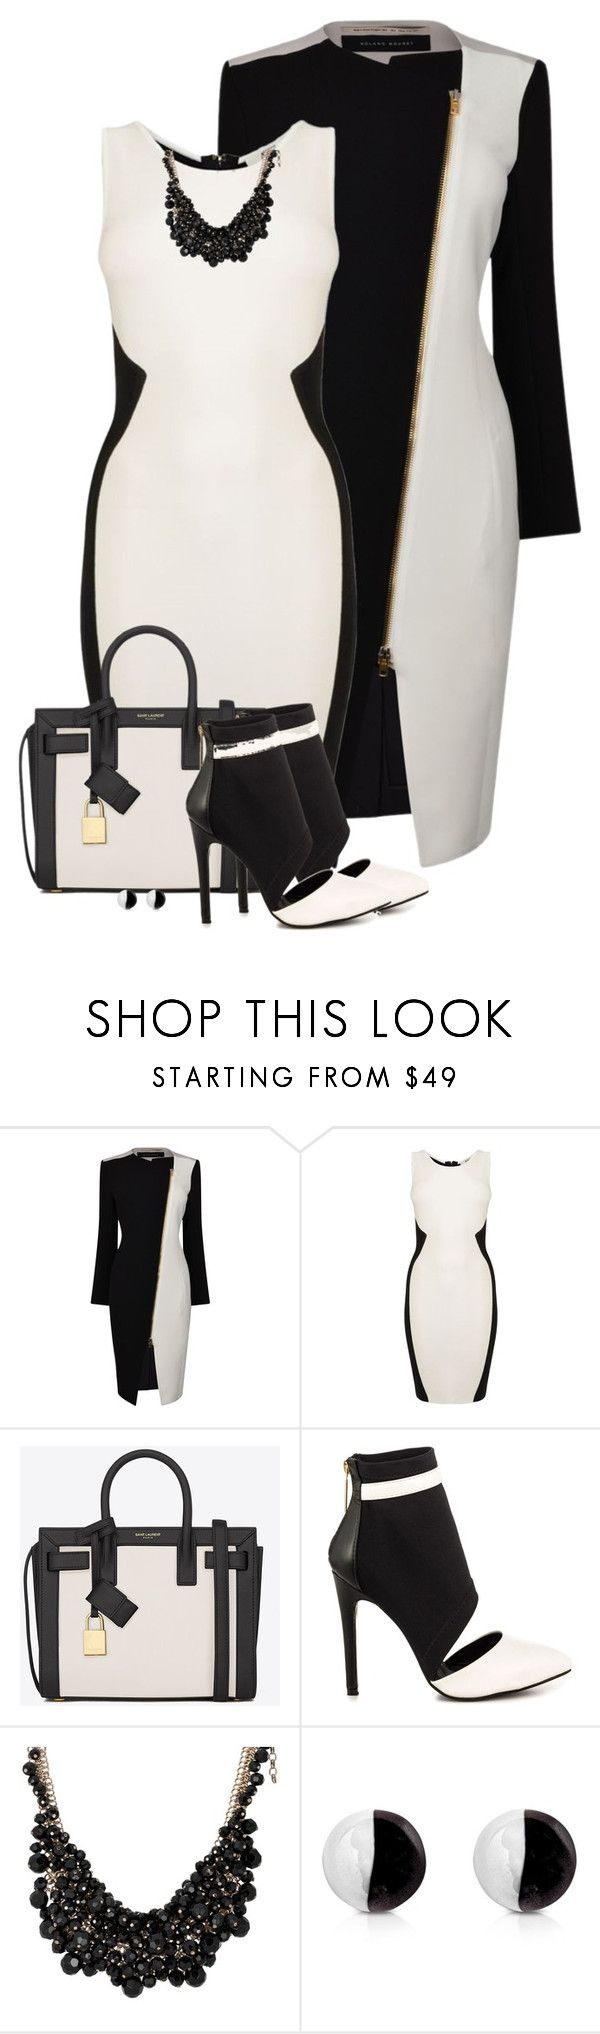 """Black and white"" by barbarapoole ❤ liked on Polyvore featuring Roland Mouret, GUESS by Marciano, Yves Saint Laurent, Liliana, sweet deluxe and Antica Murrina"